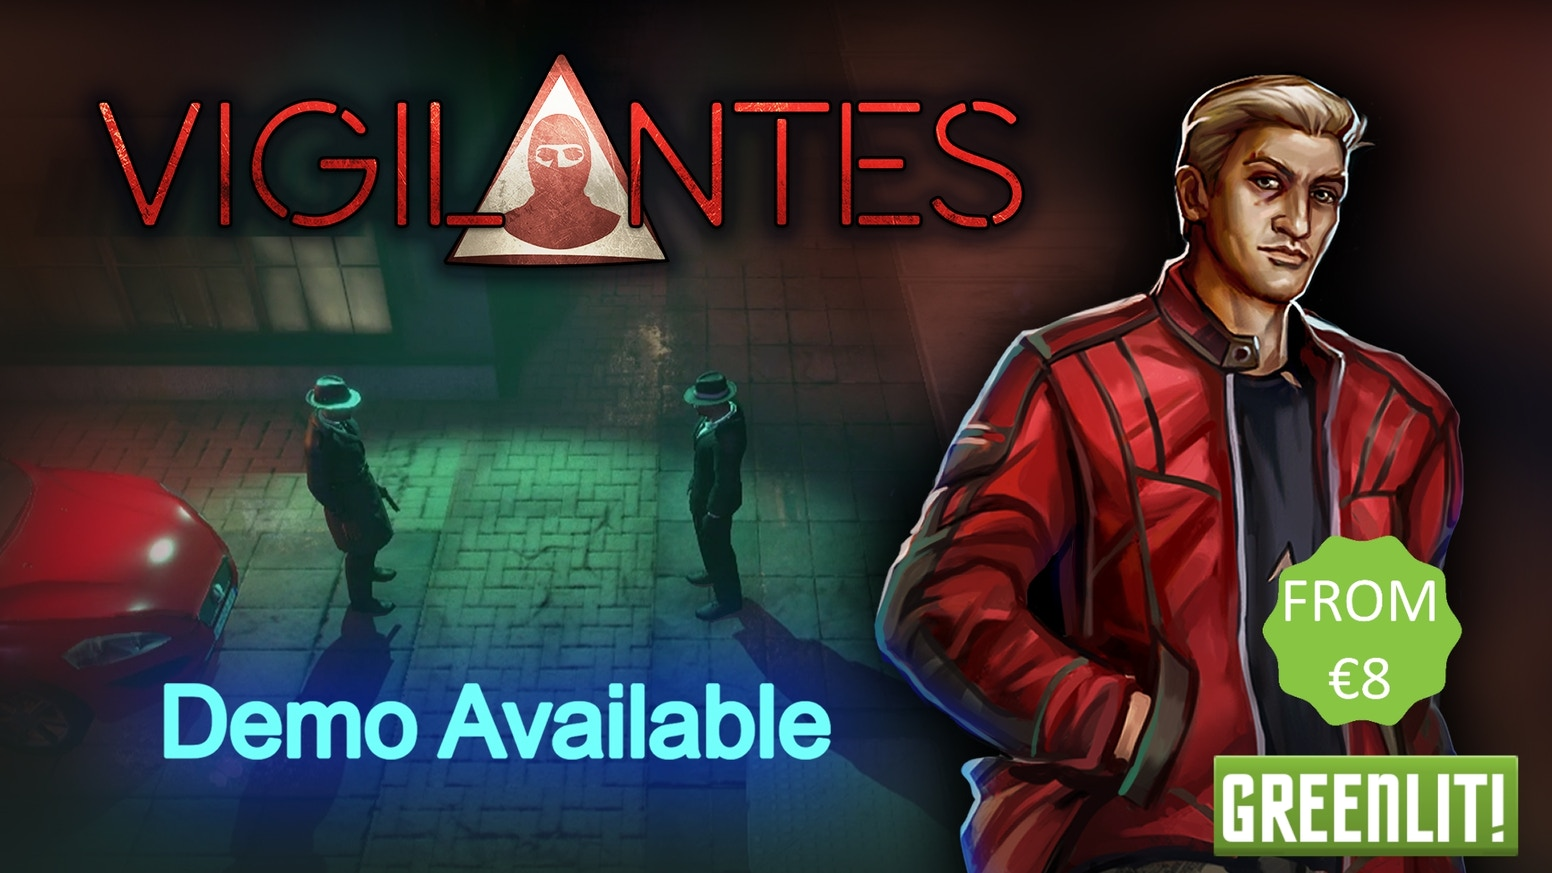 Vigilantes, a crime themed, turn based tactical RPG for PC by